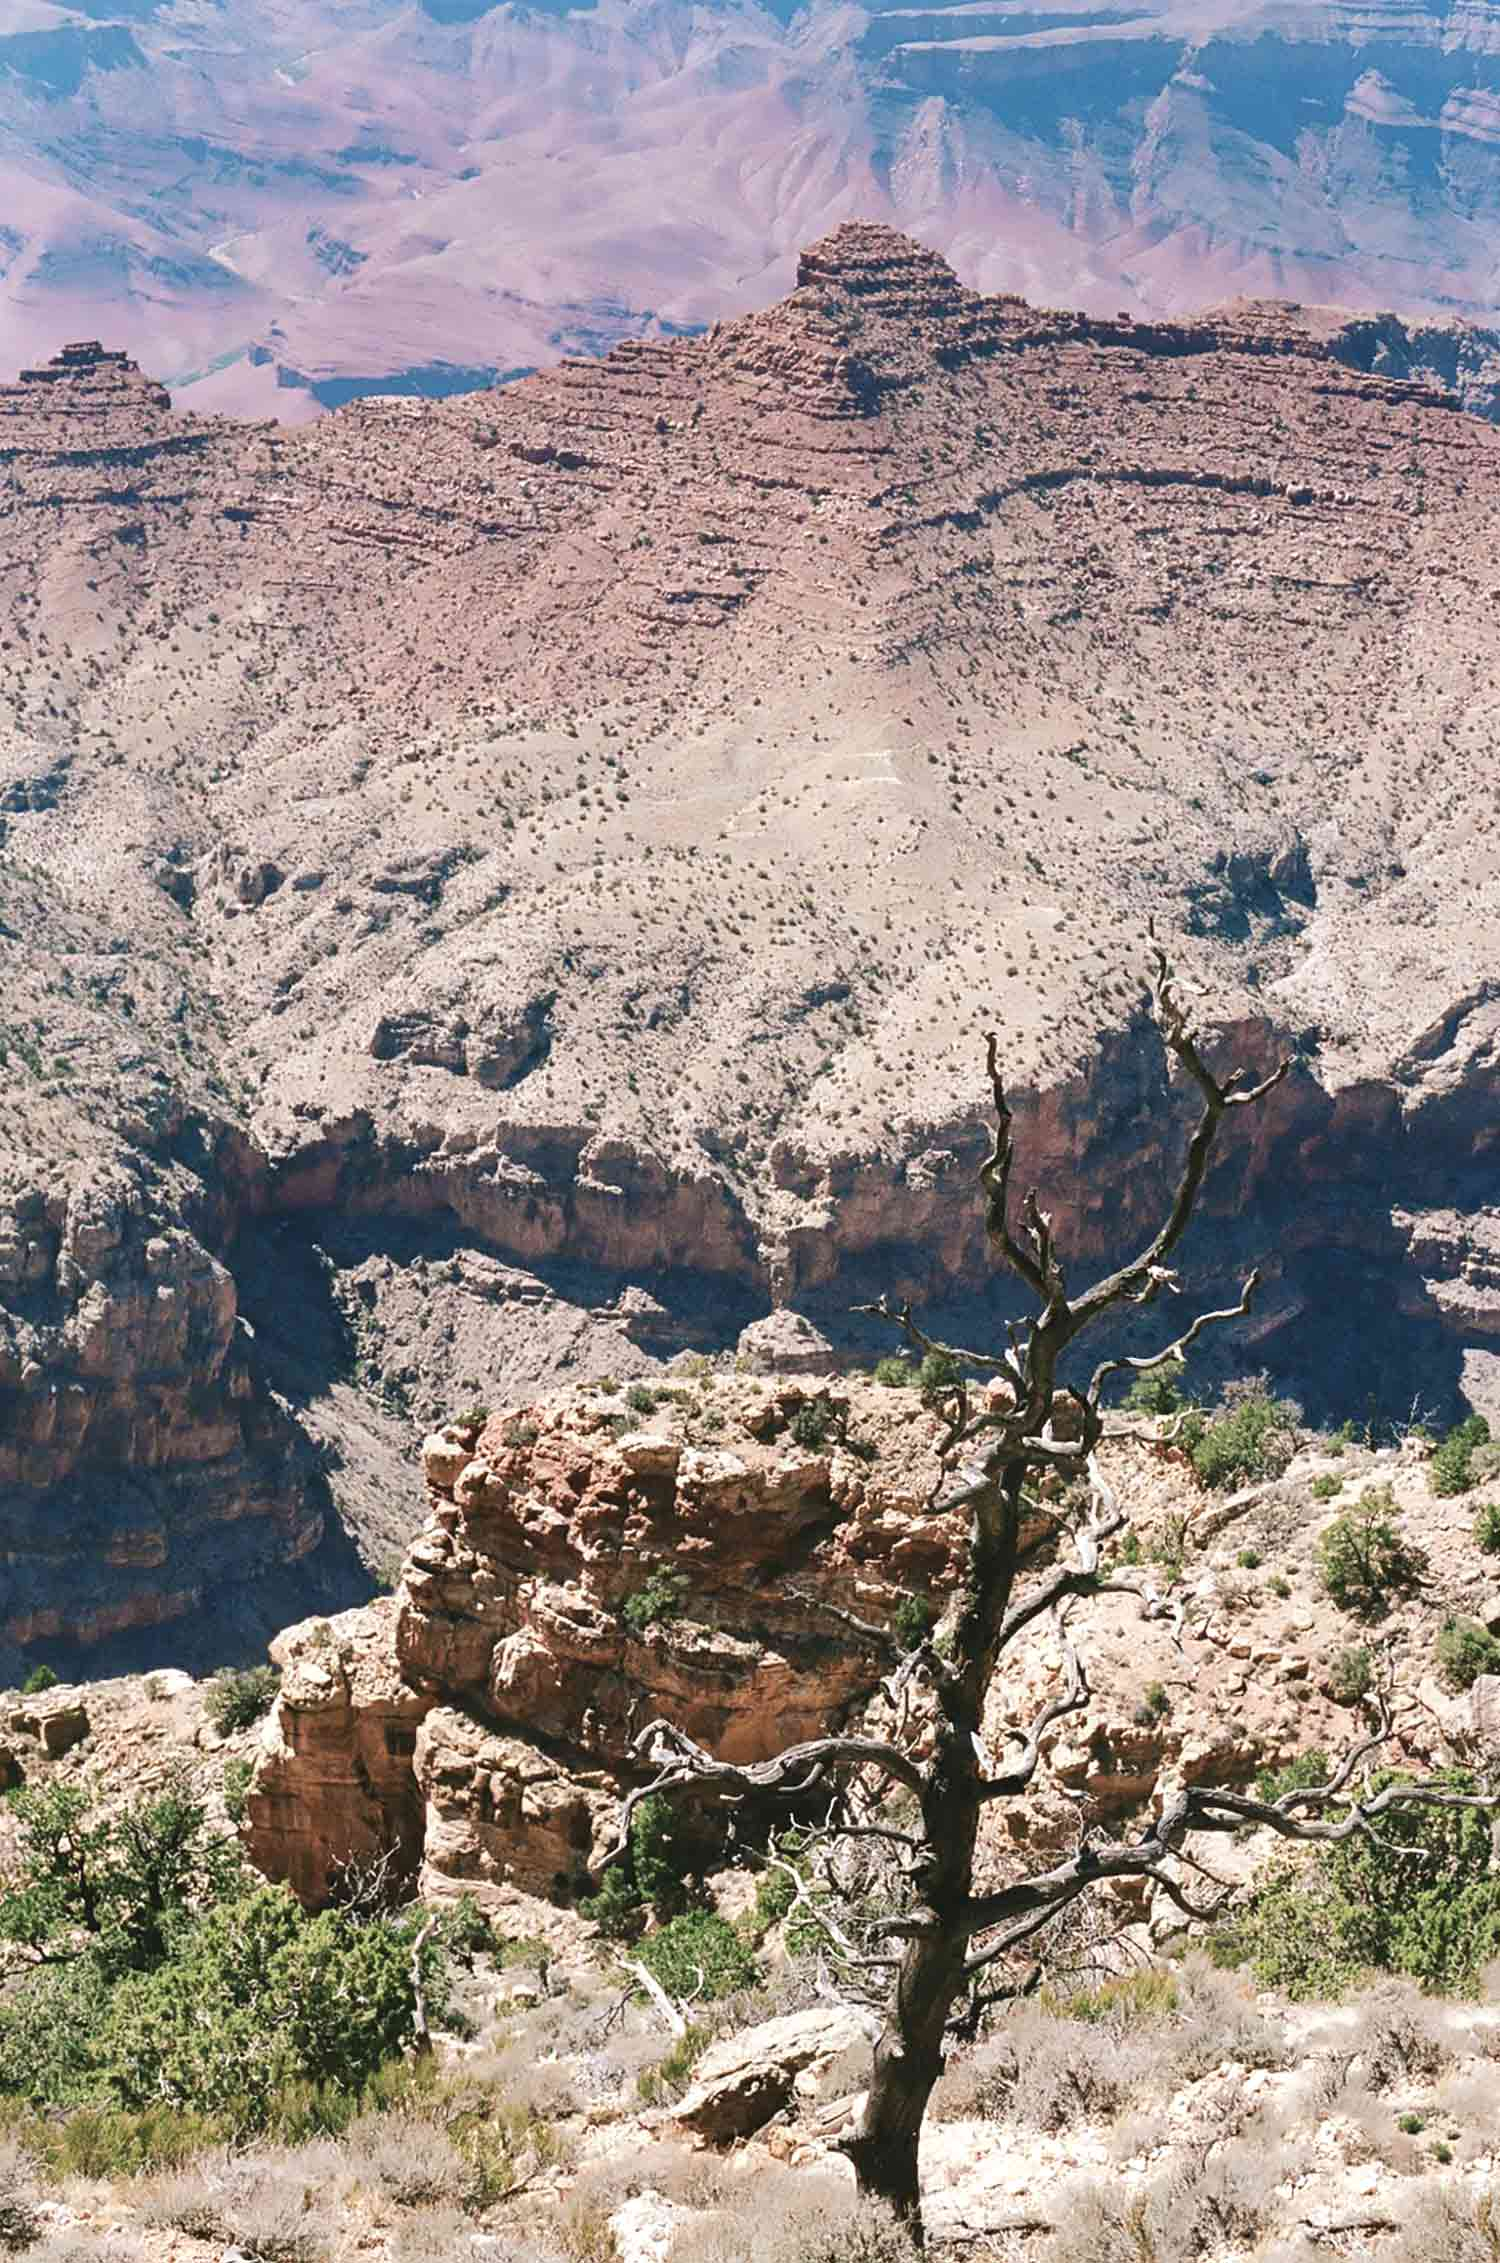 westcoastblog_arizona_6.jpg